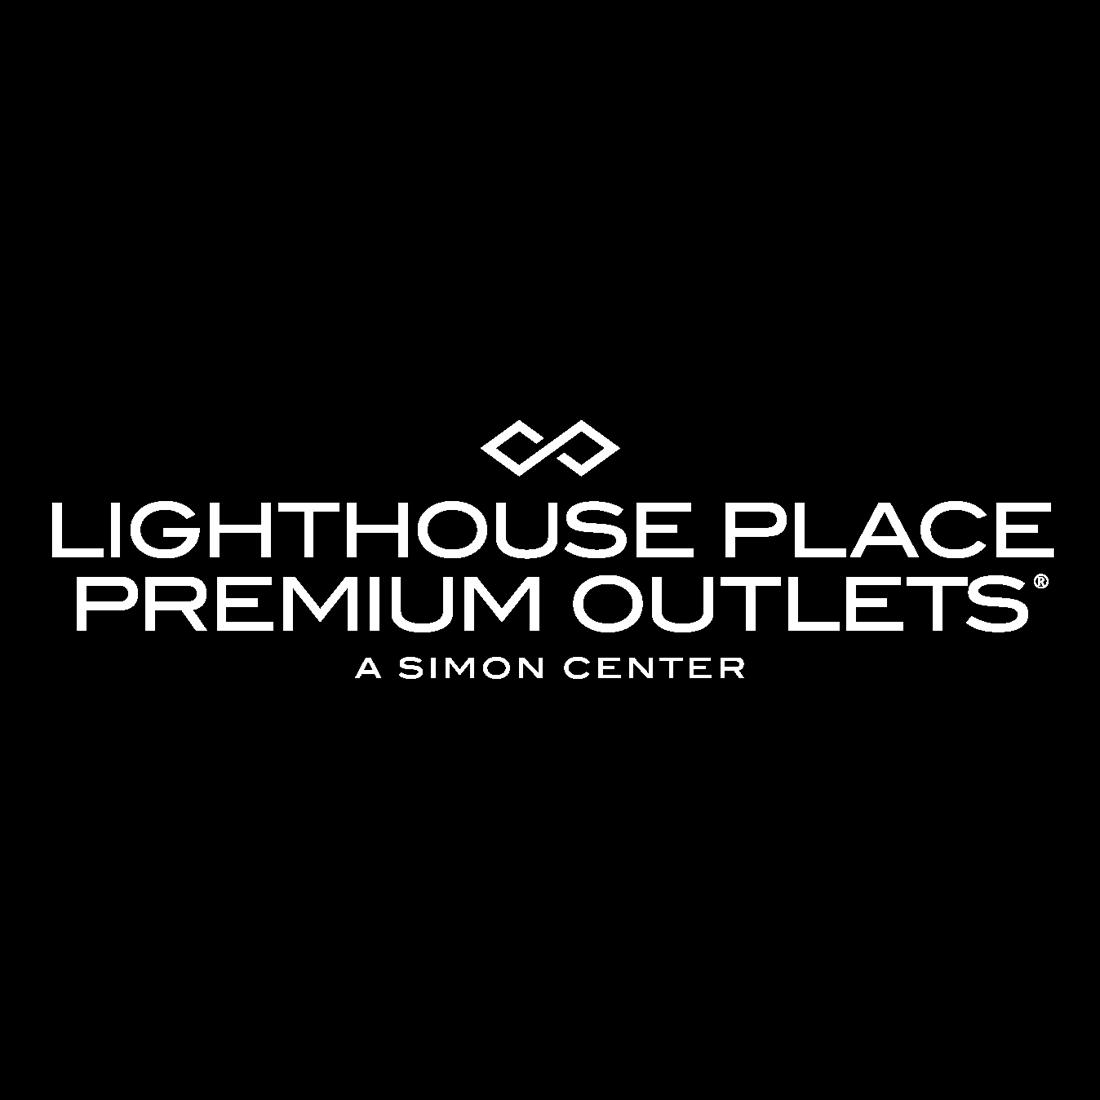 Lighthouse Place Premium Outlets image 19